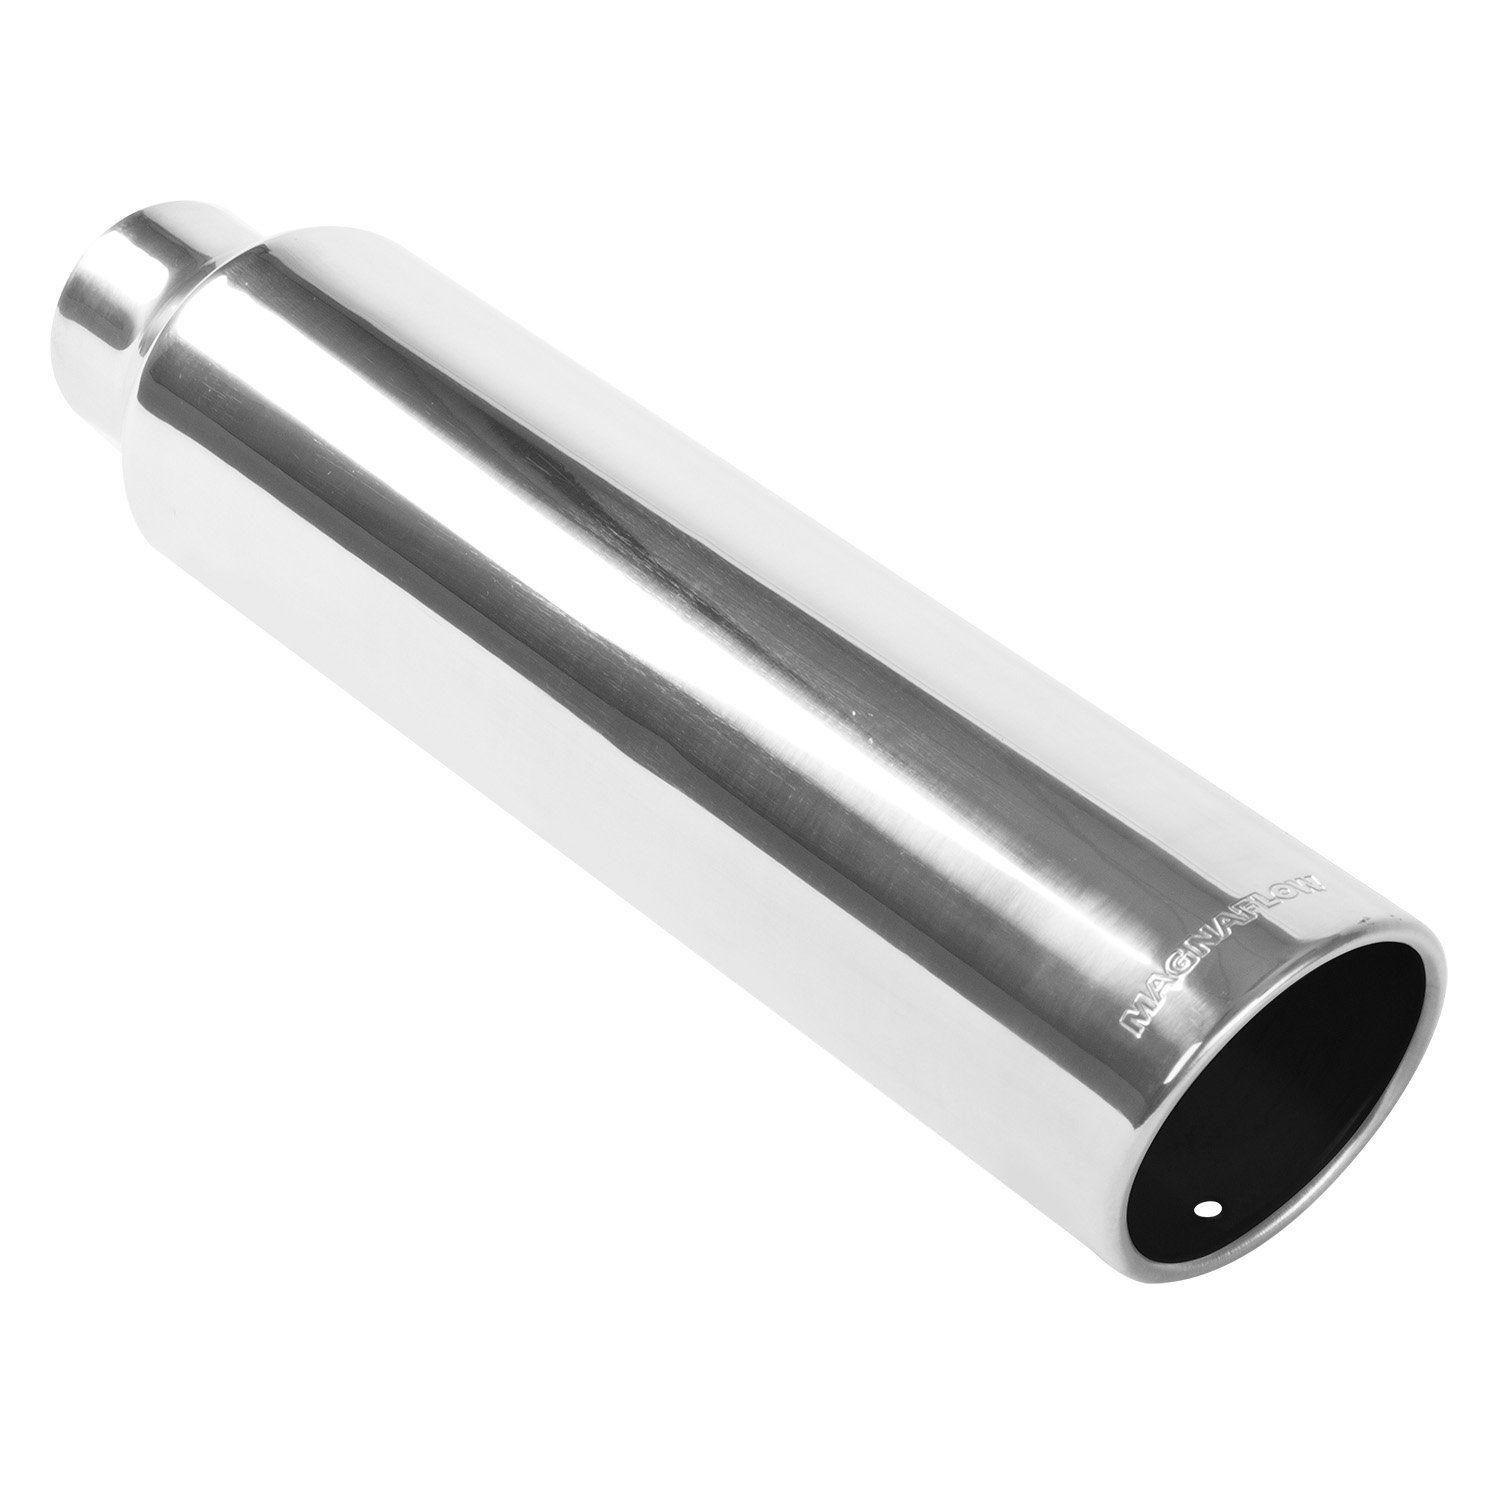 Magnaflow 35117 EXHAUST TAIL PIPE TIP